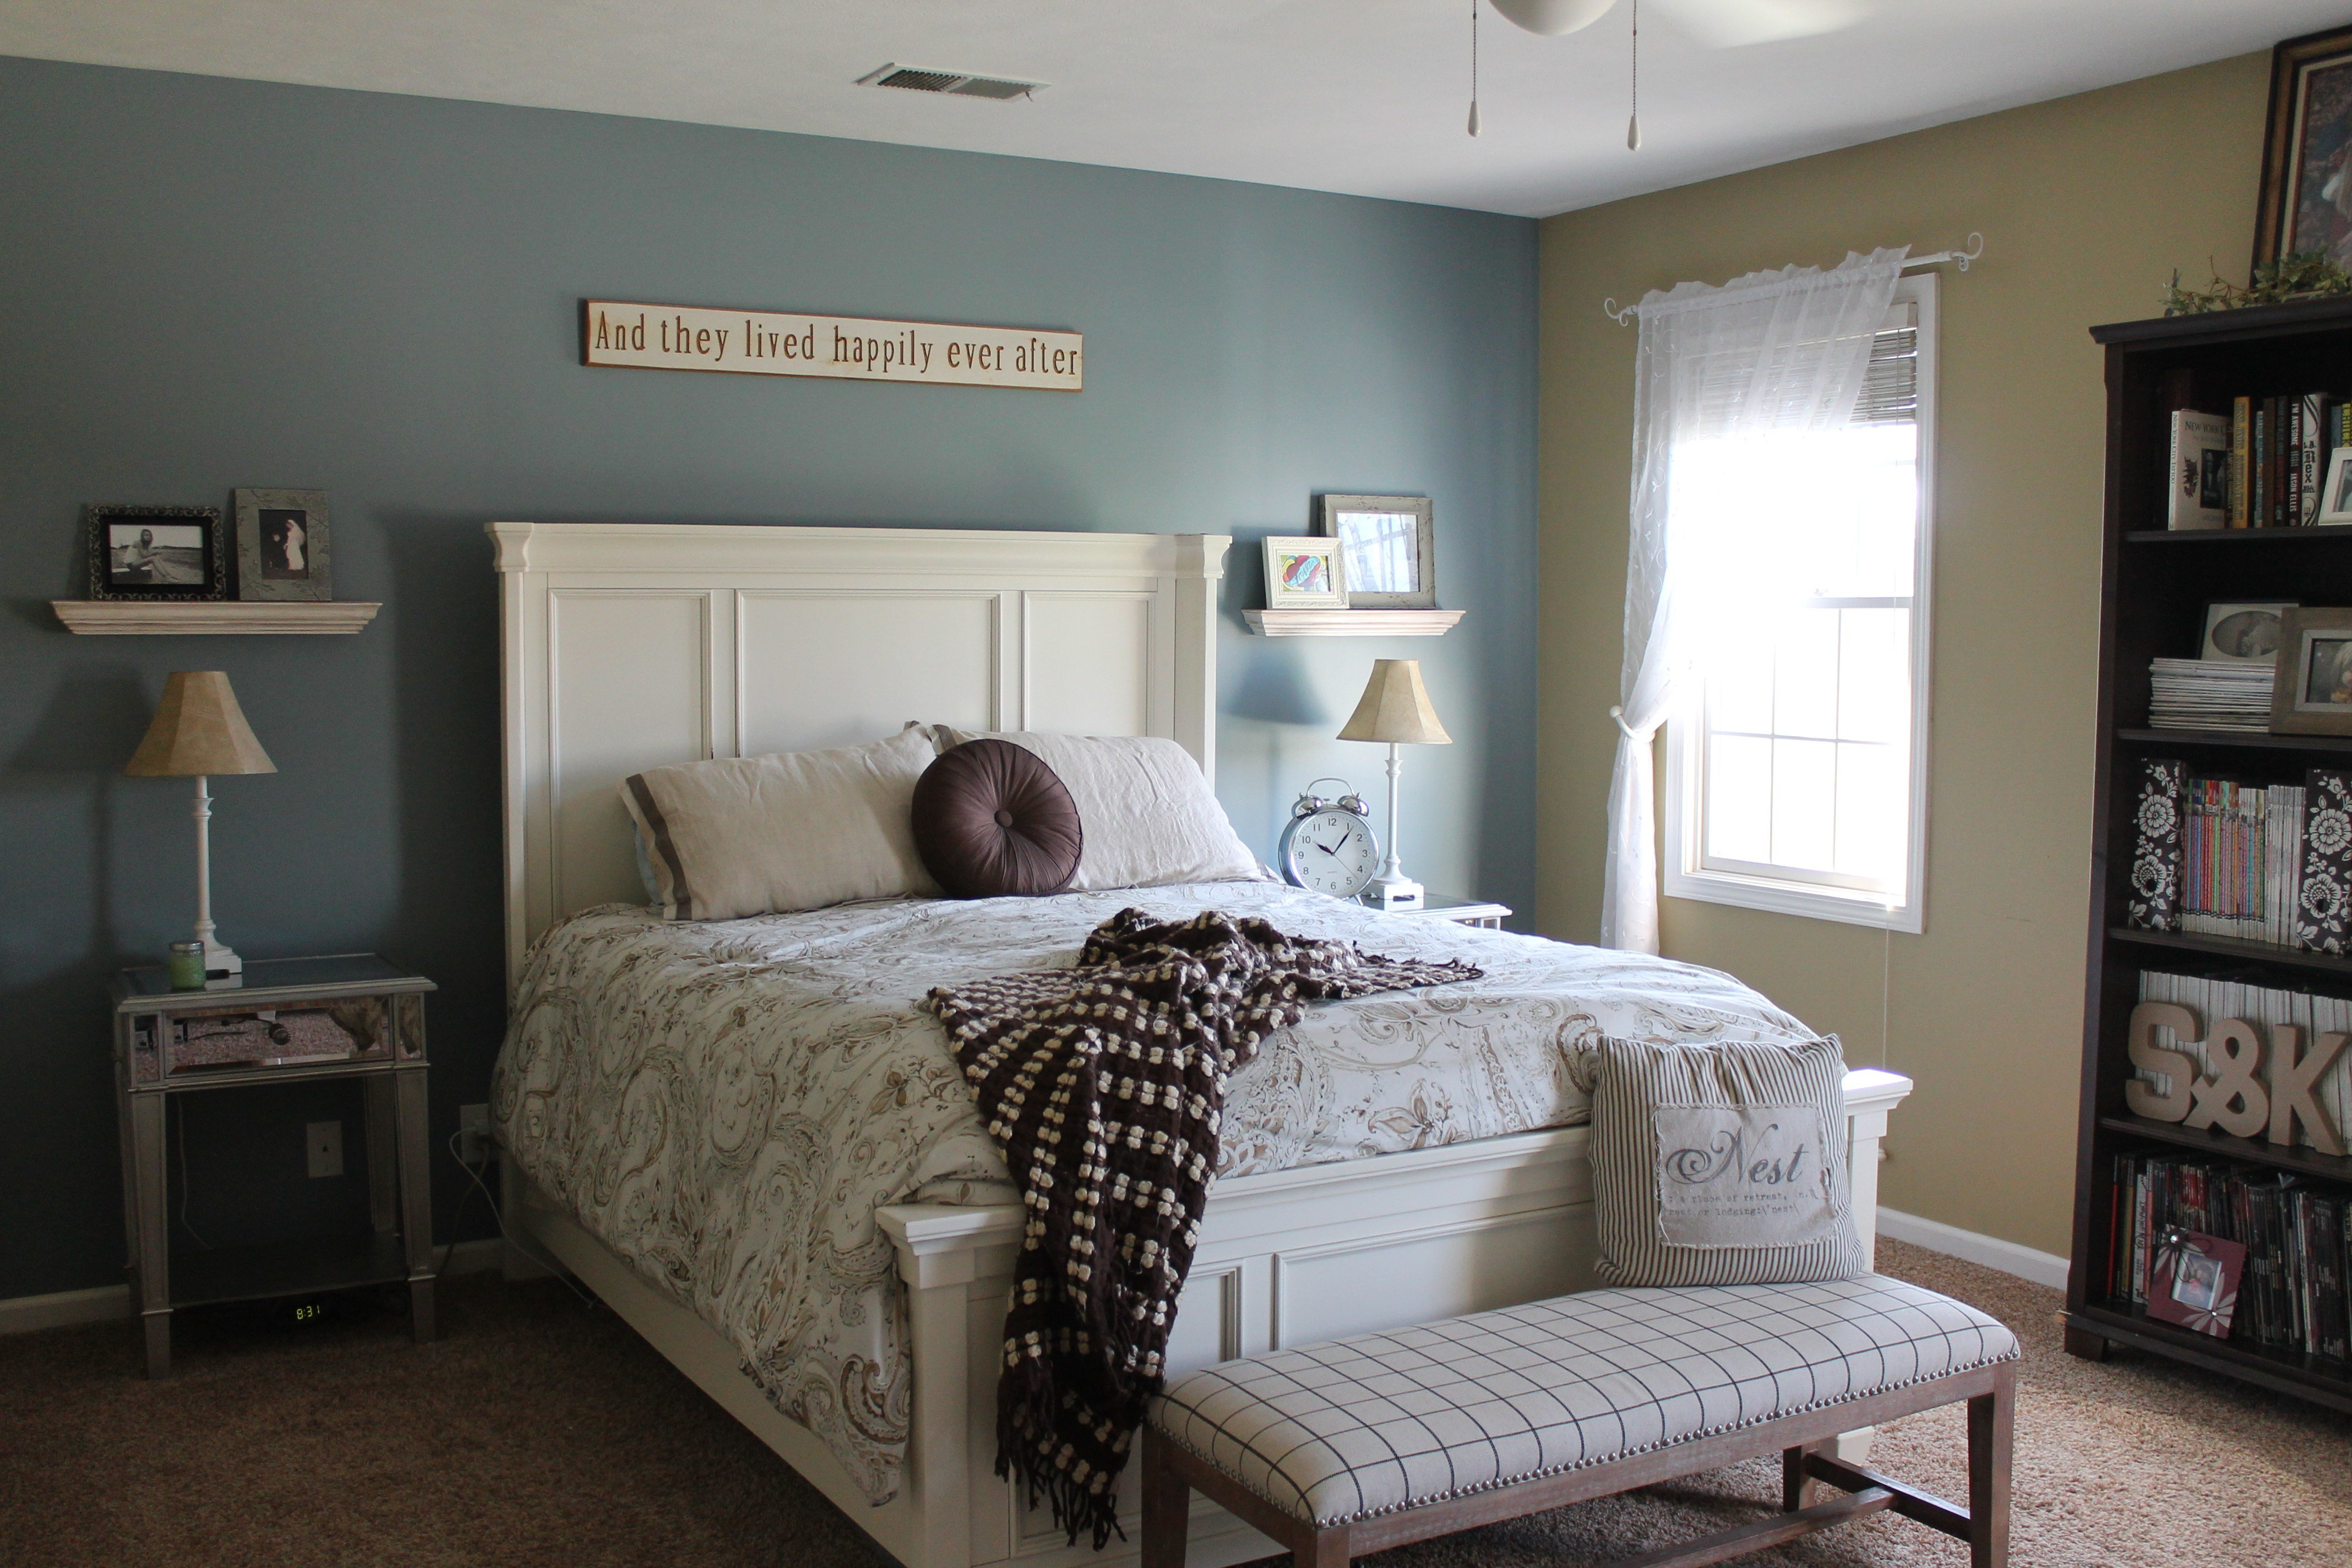 Best August 27 2014 The Master Gets A Makeover… – Nest Number 4 With Pictures